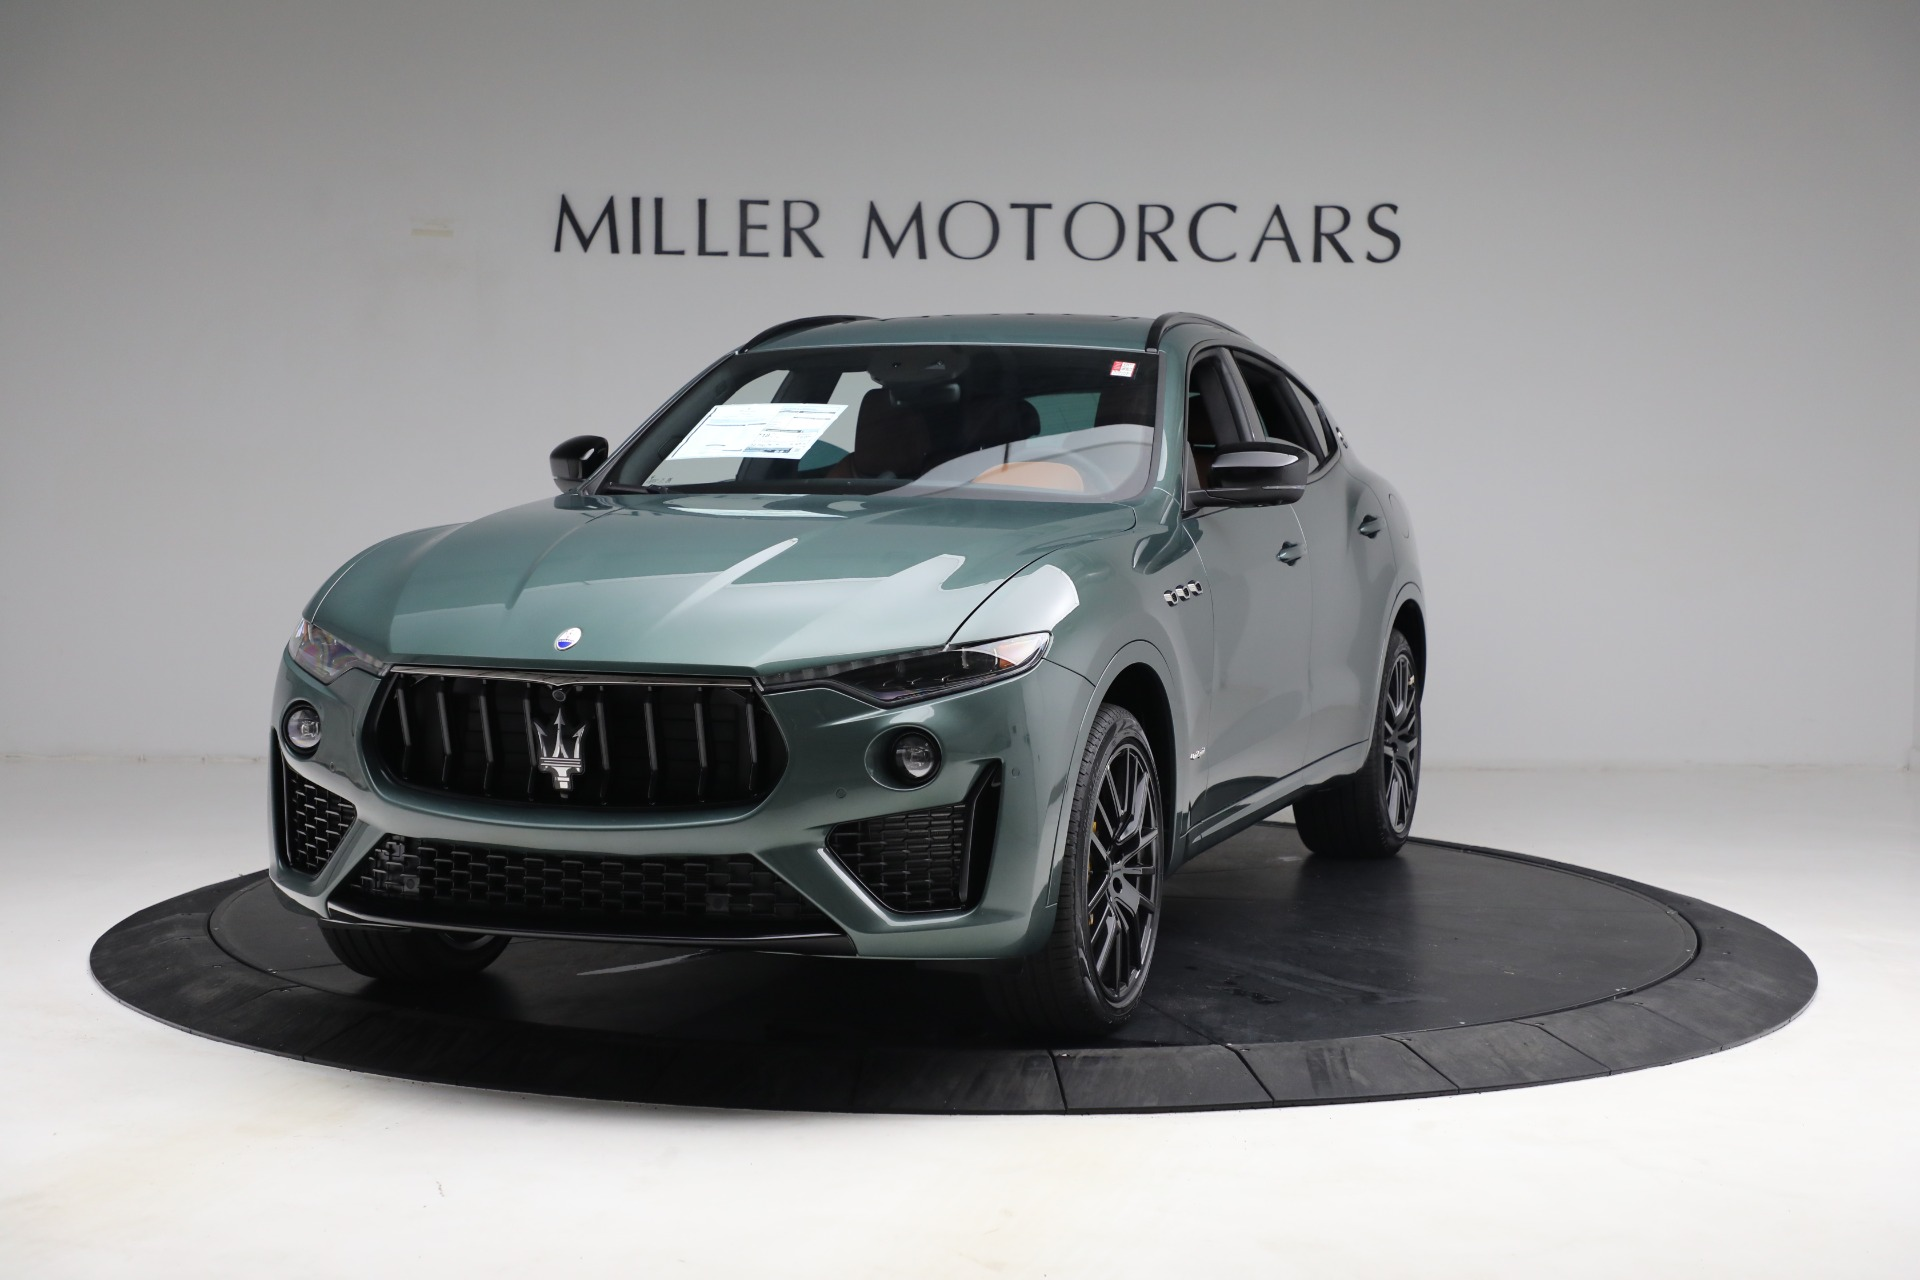 New 2021 Maserati Levante S GranSport for sale $112,899 at Bentley Greenwich in Greenwich CT 06830 1